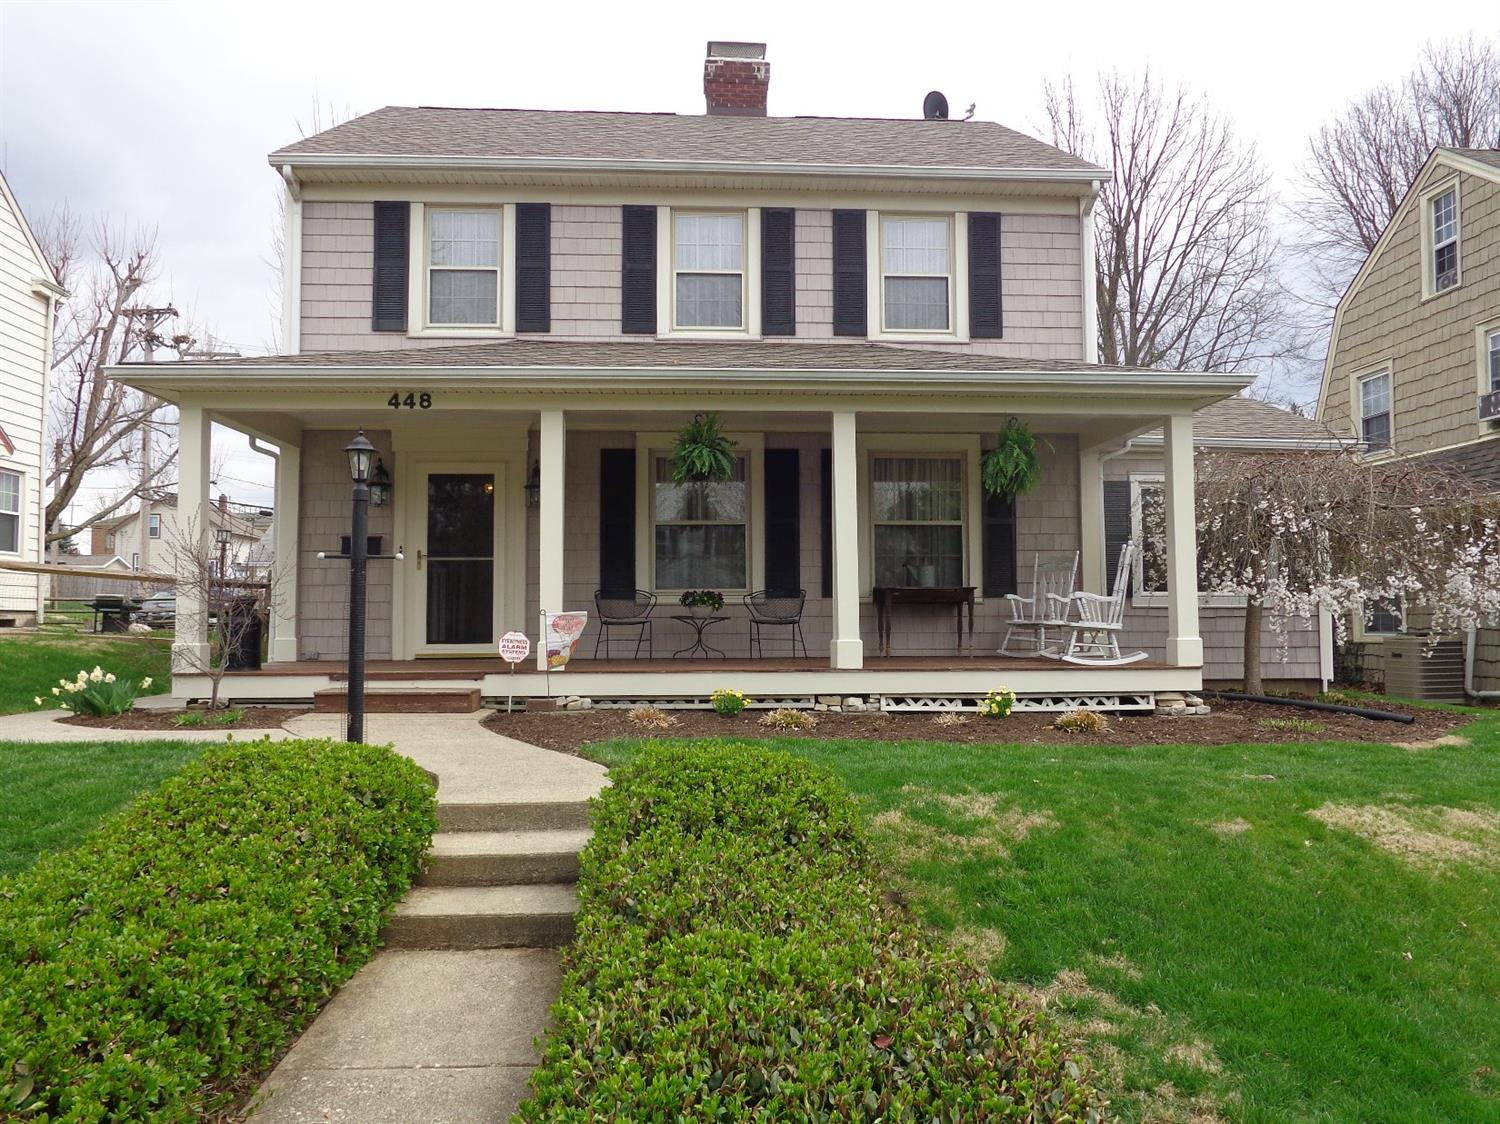 448 Dick Ave Hamilton West, OH